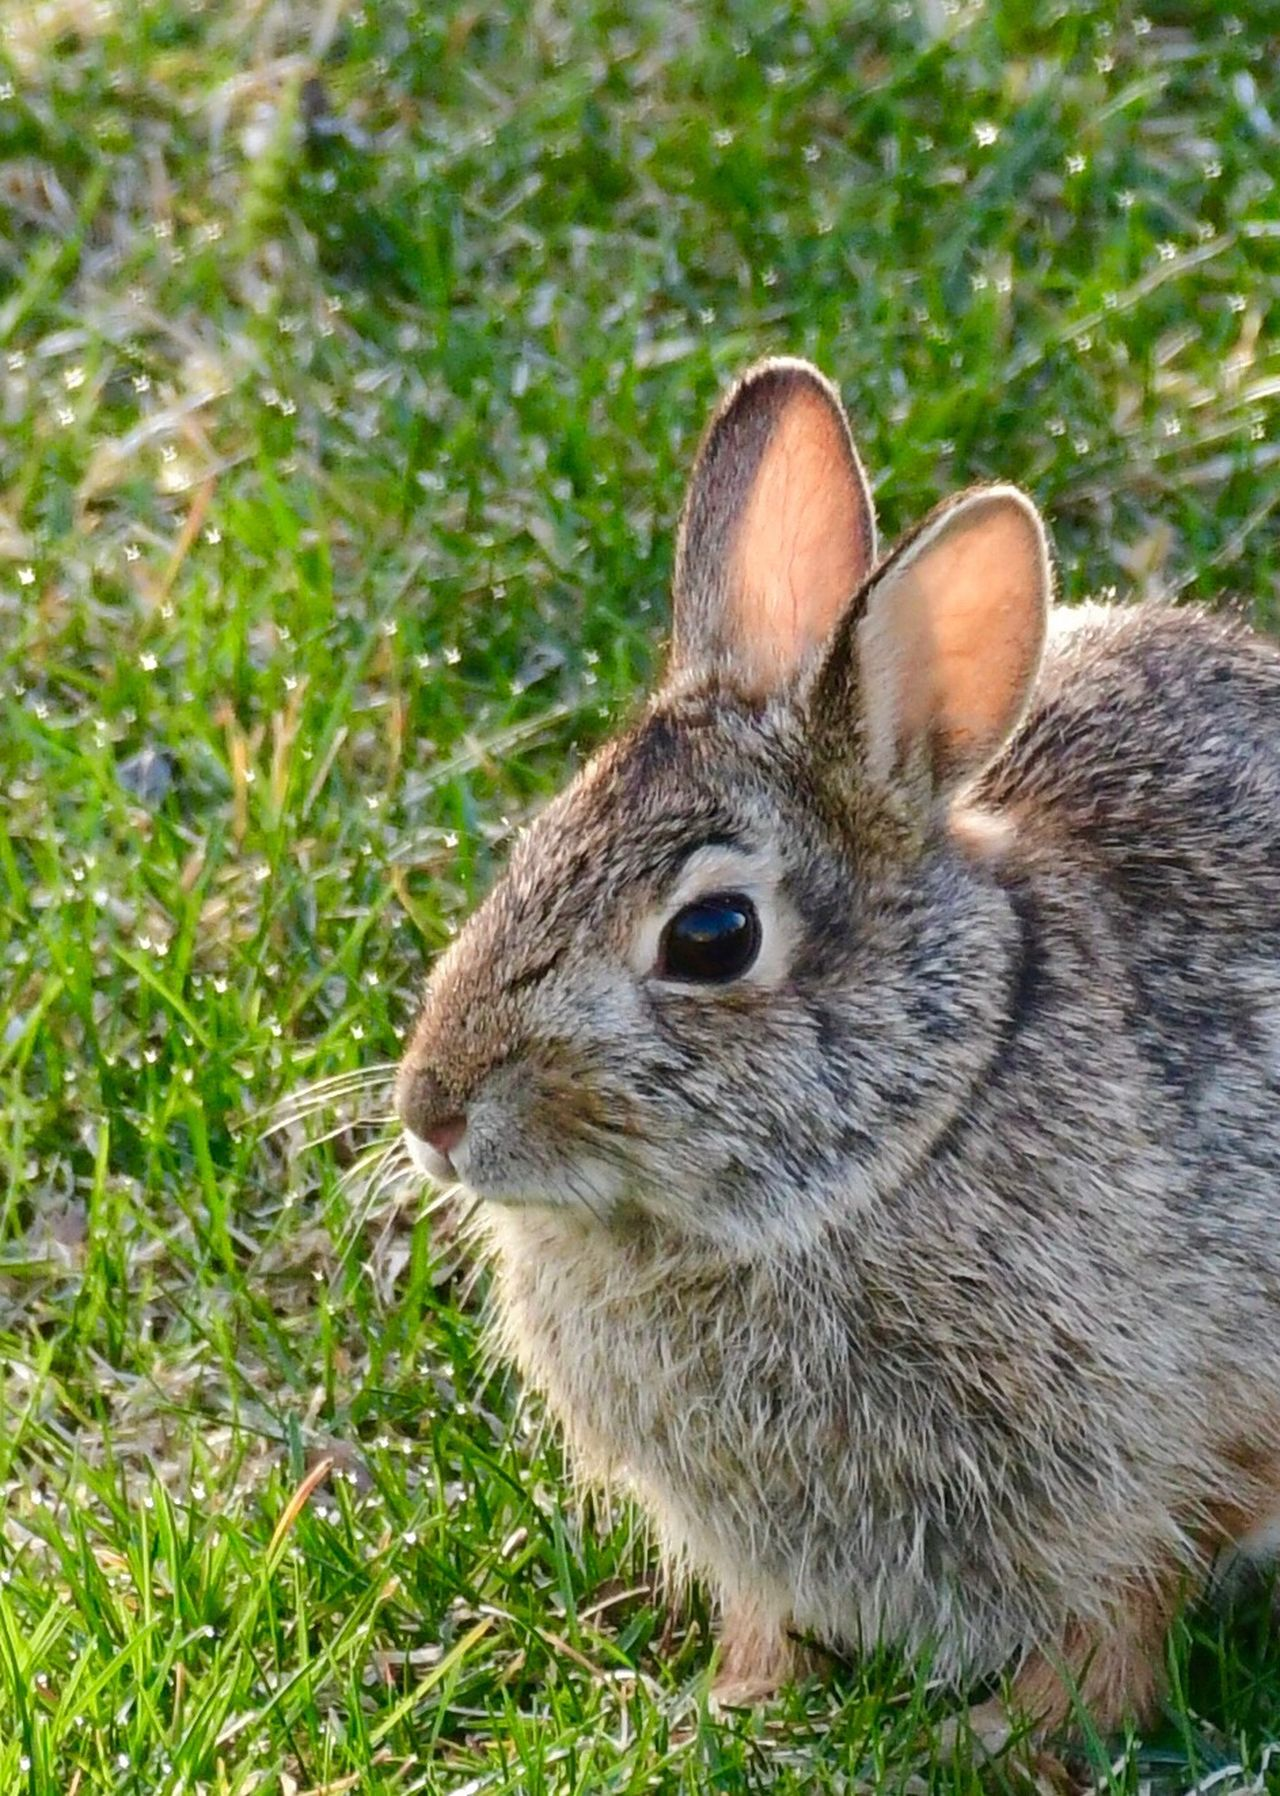 Grass Animal Themes One Animal Animals In The Wild Field Day Mammal Outdoors Close-up Animal Wildlife Nature No People Portrait Bunny  Spring Bunnies